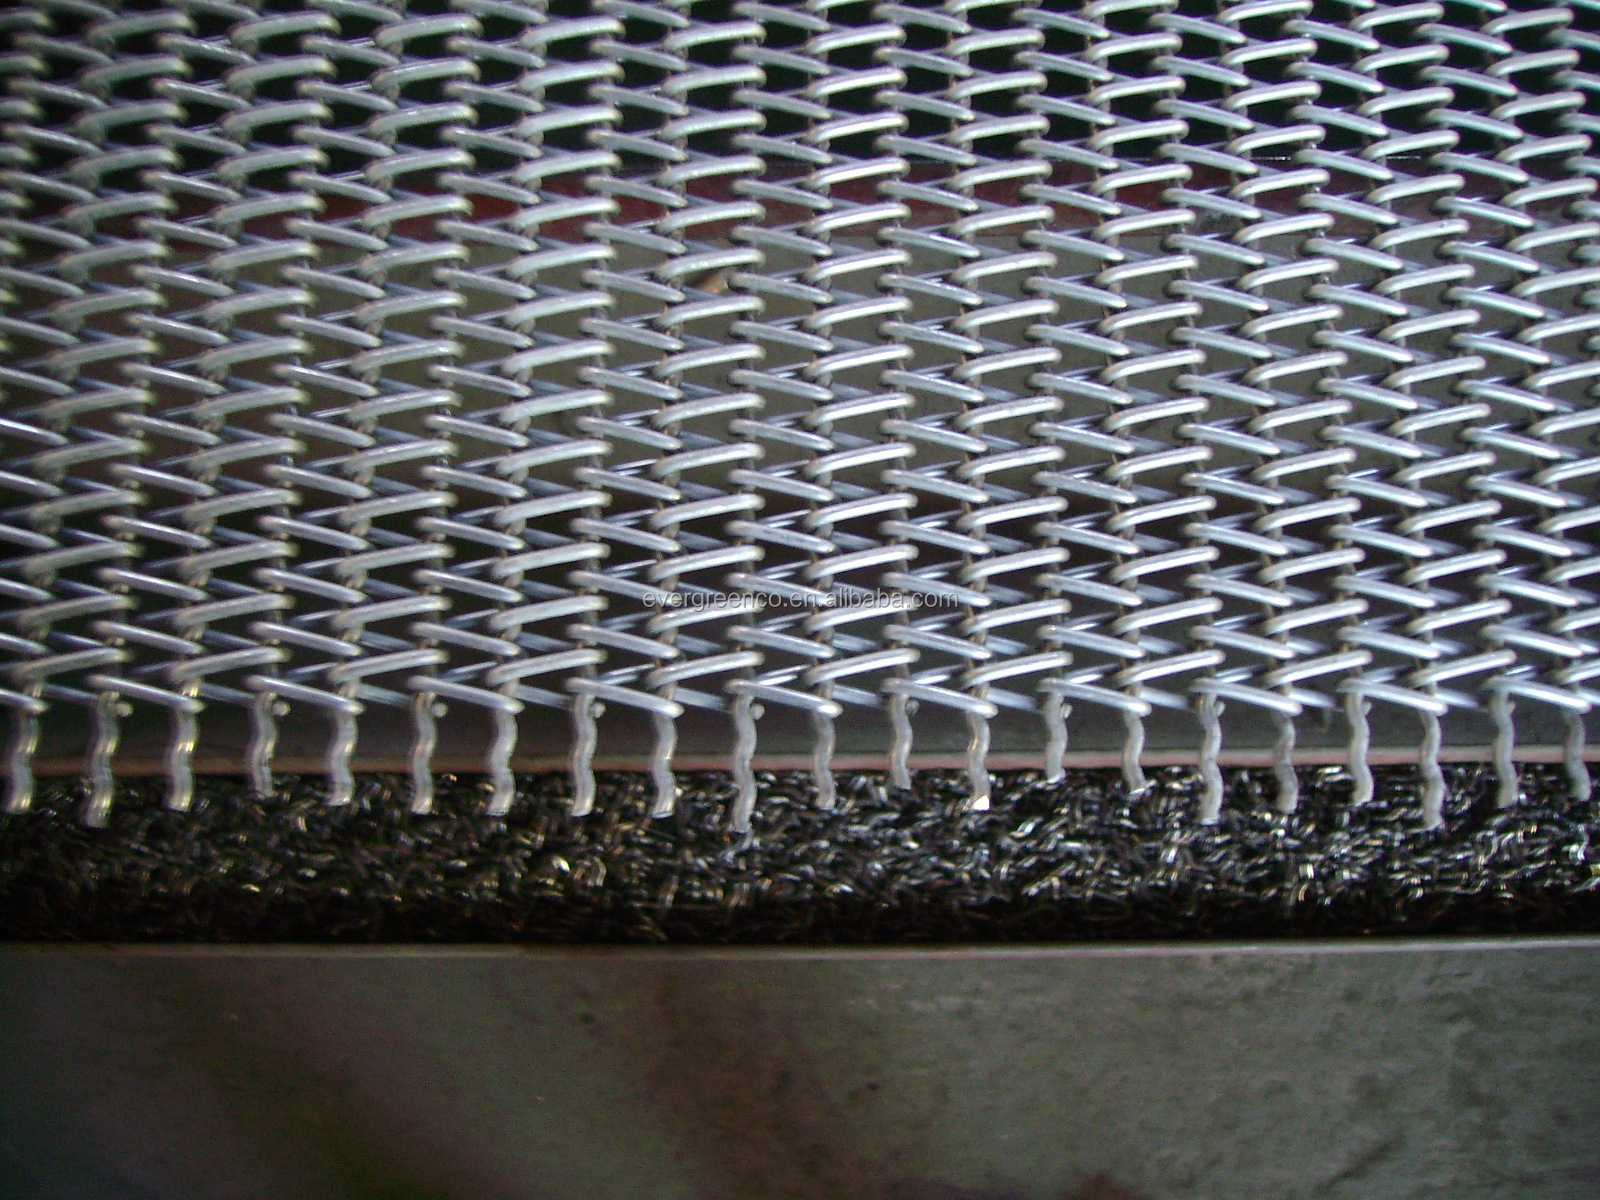 310.321.430.410 stainless steel conveyor wire mesh belt